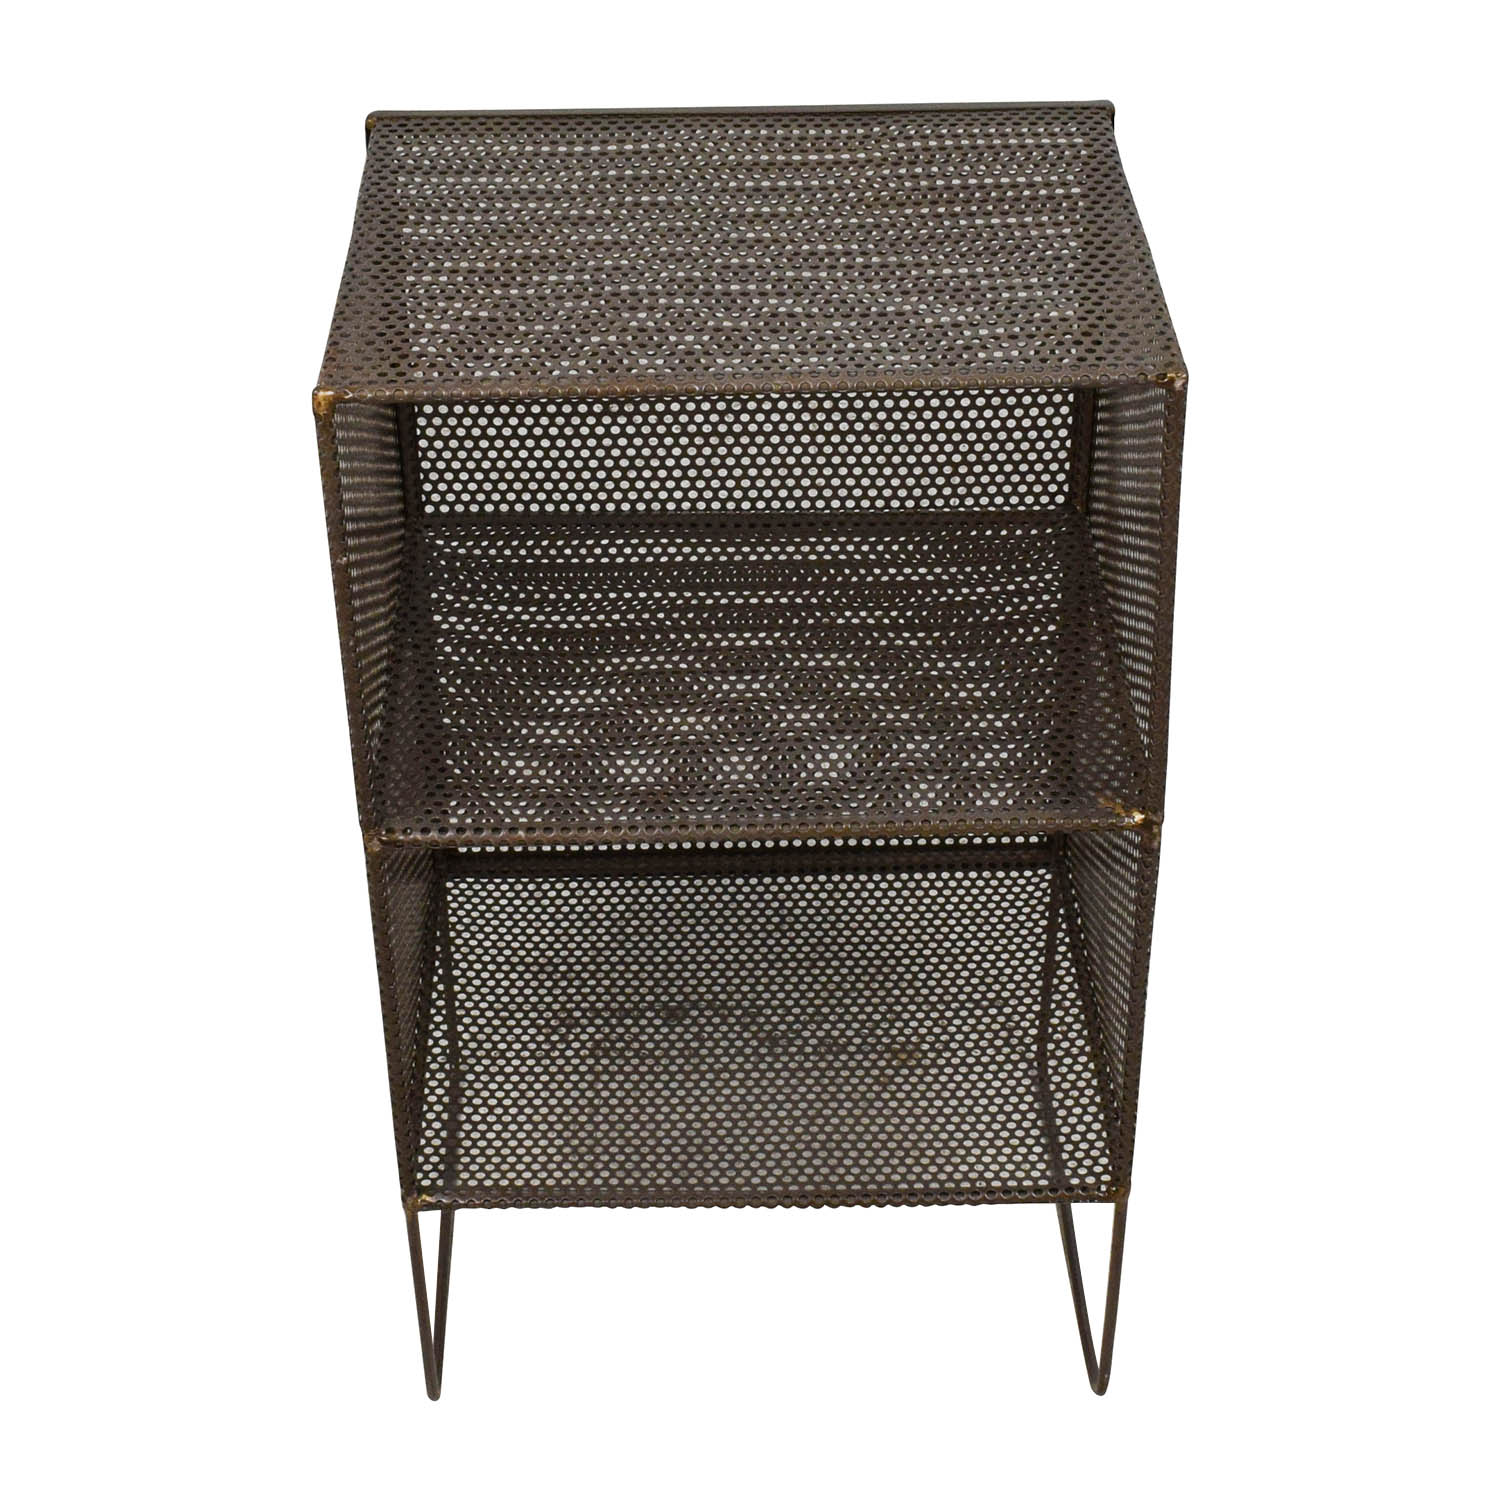 53 off small metal end table tables. Black Bedroom Furniture Sets. Home Design Ideas